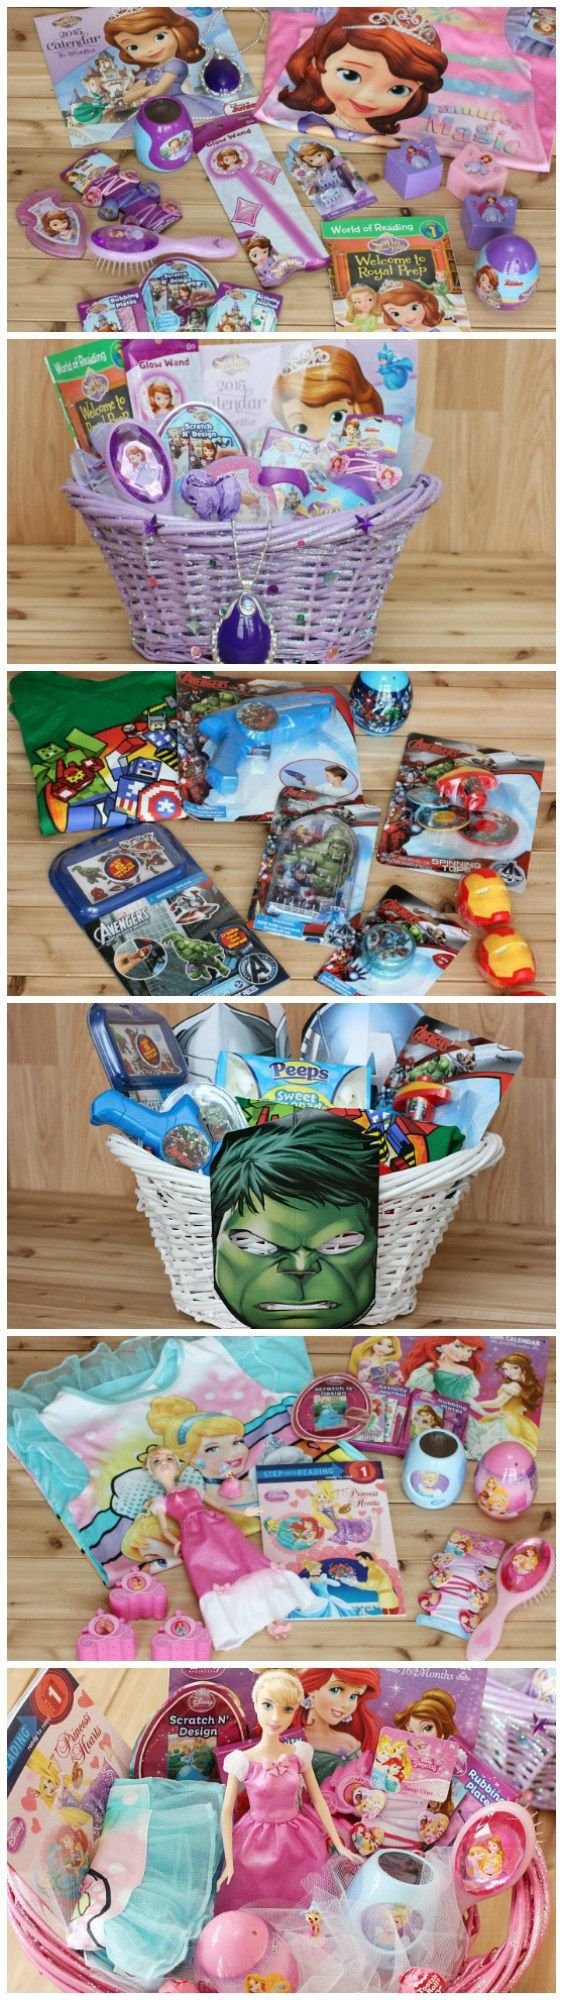 Check out how we made our own Disney themed Easter baskets and make your own or buy pre-filled Disney baskets. Sofia the First Easter Basket. The Avengers Easter Basket/ Disney Princess Easter Baskets. [affiliate]